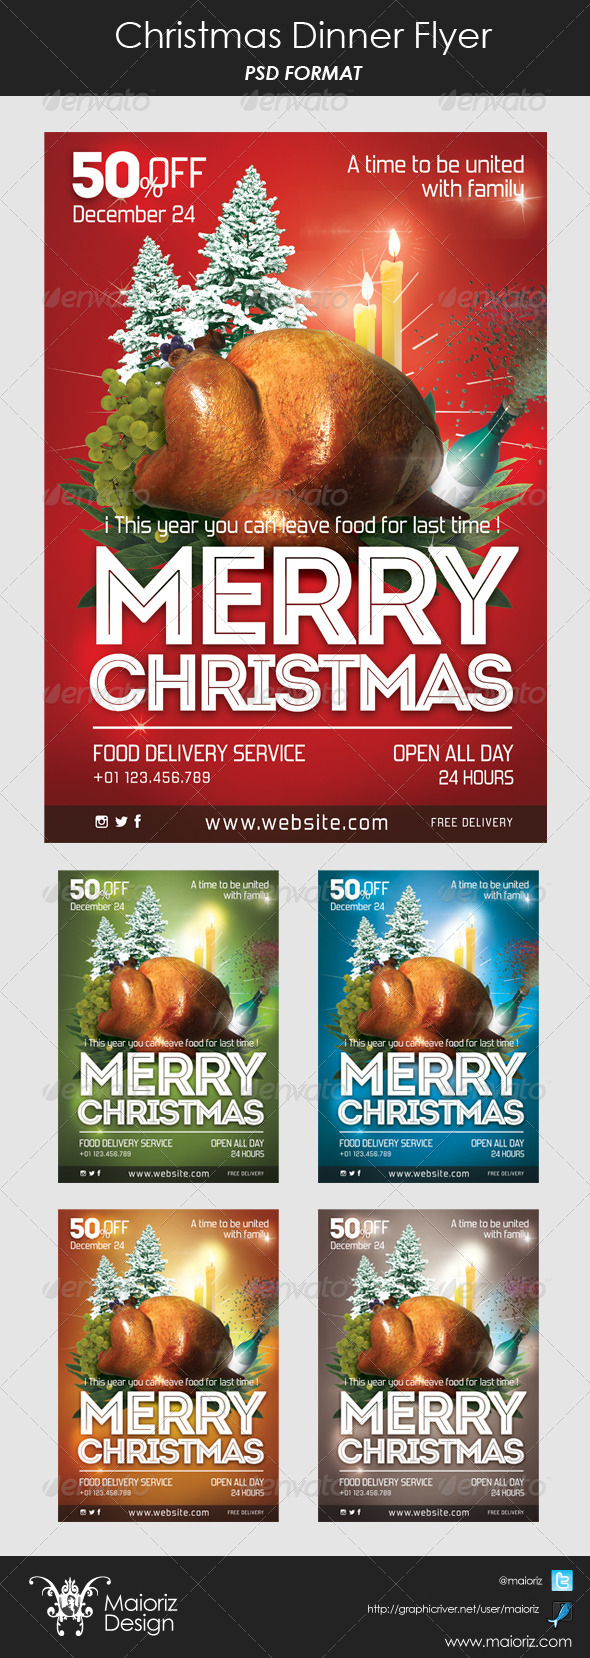 christmas dinner flyer graphics designs templates